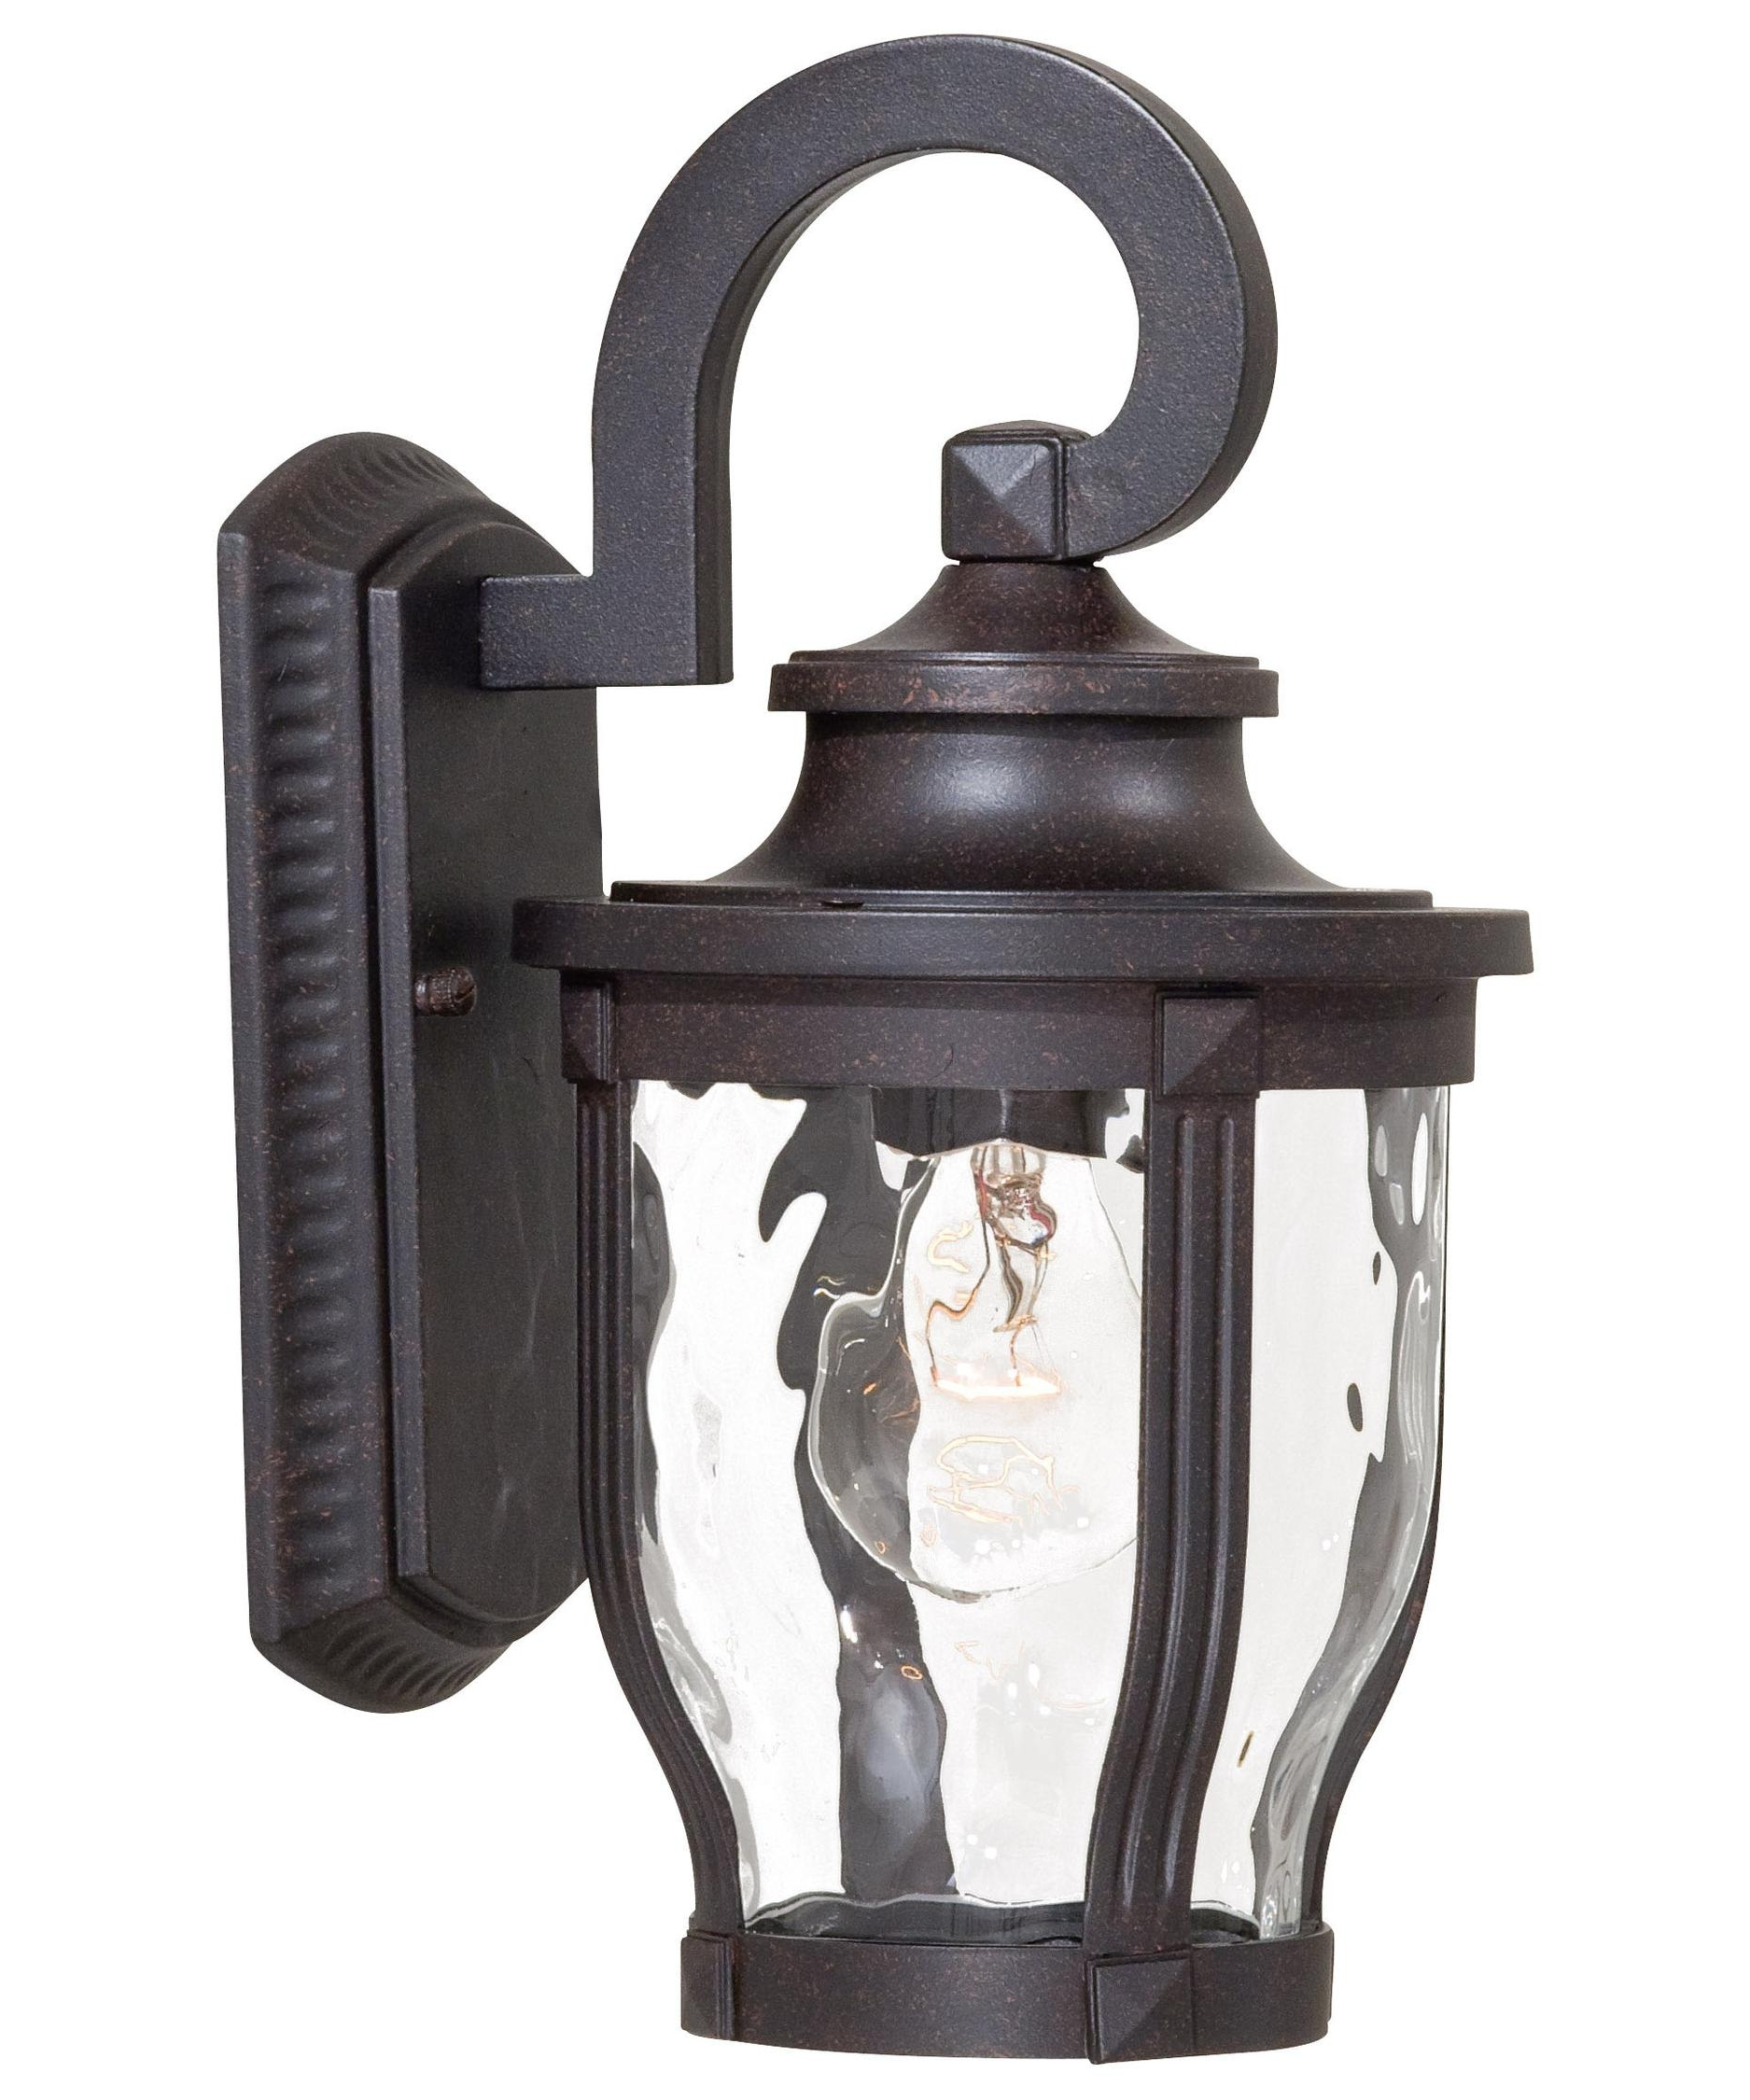 Black Outdoor Wall Lighting Pertaining To Popular Minka Lavery 8761 Merrimack 6 Inch Wide 1 Light Outdoor Wall Light (View 7 of 20)